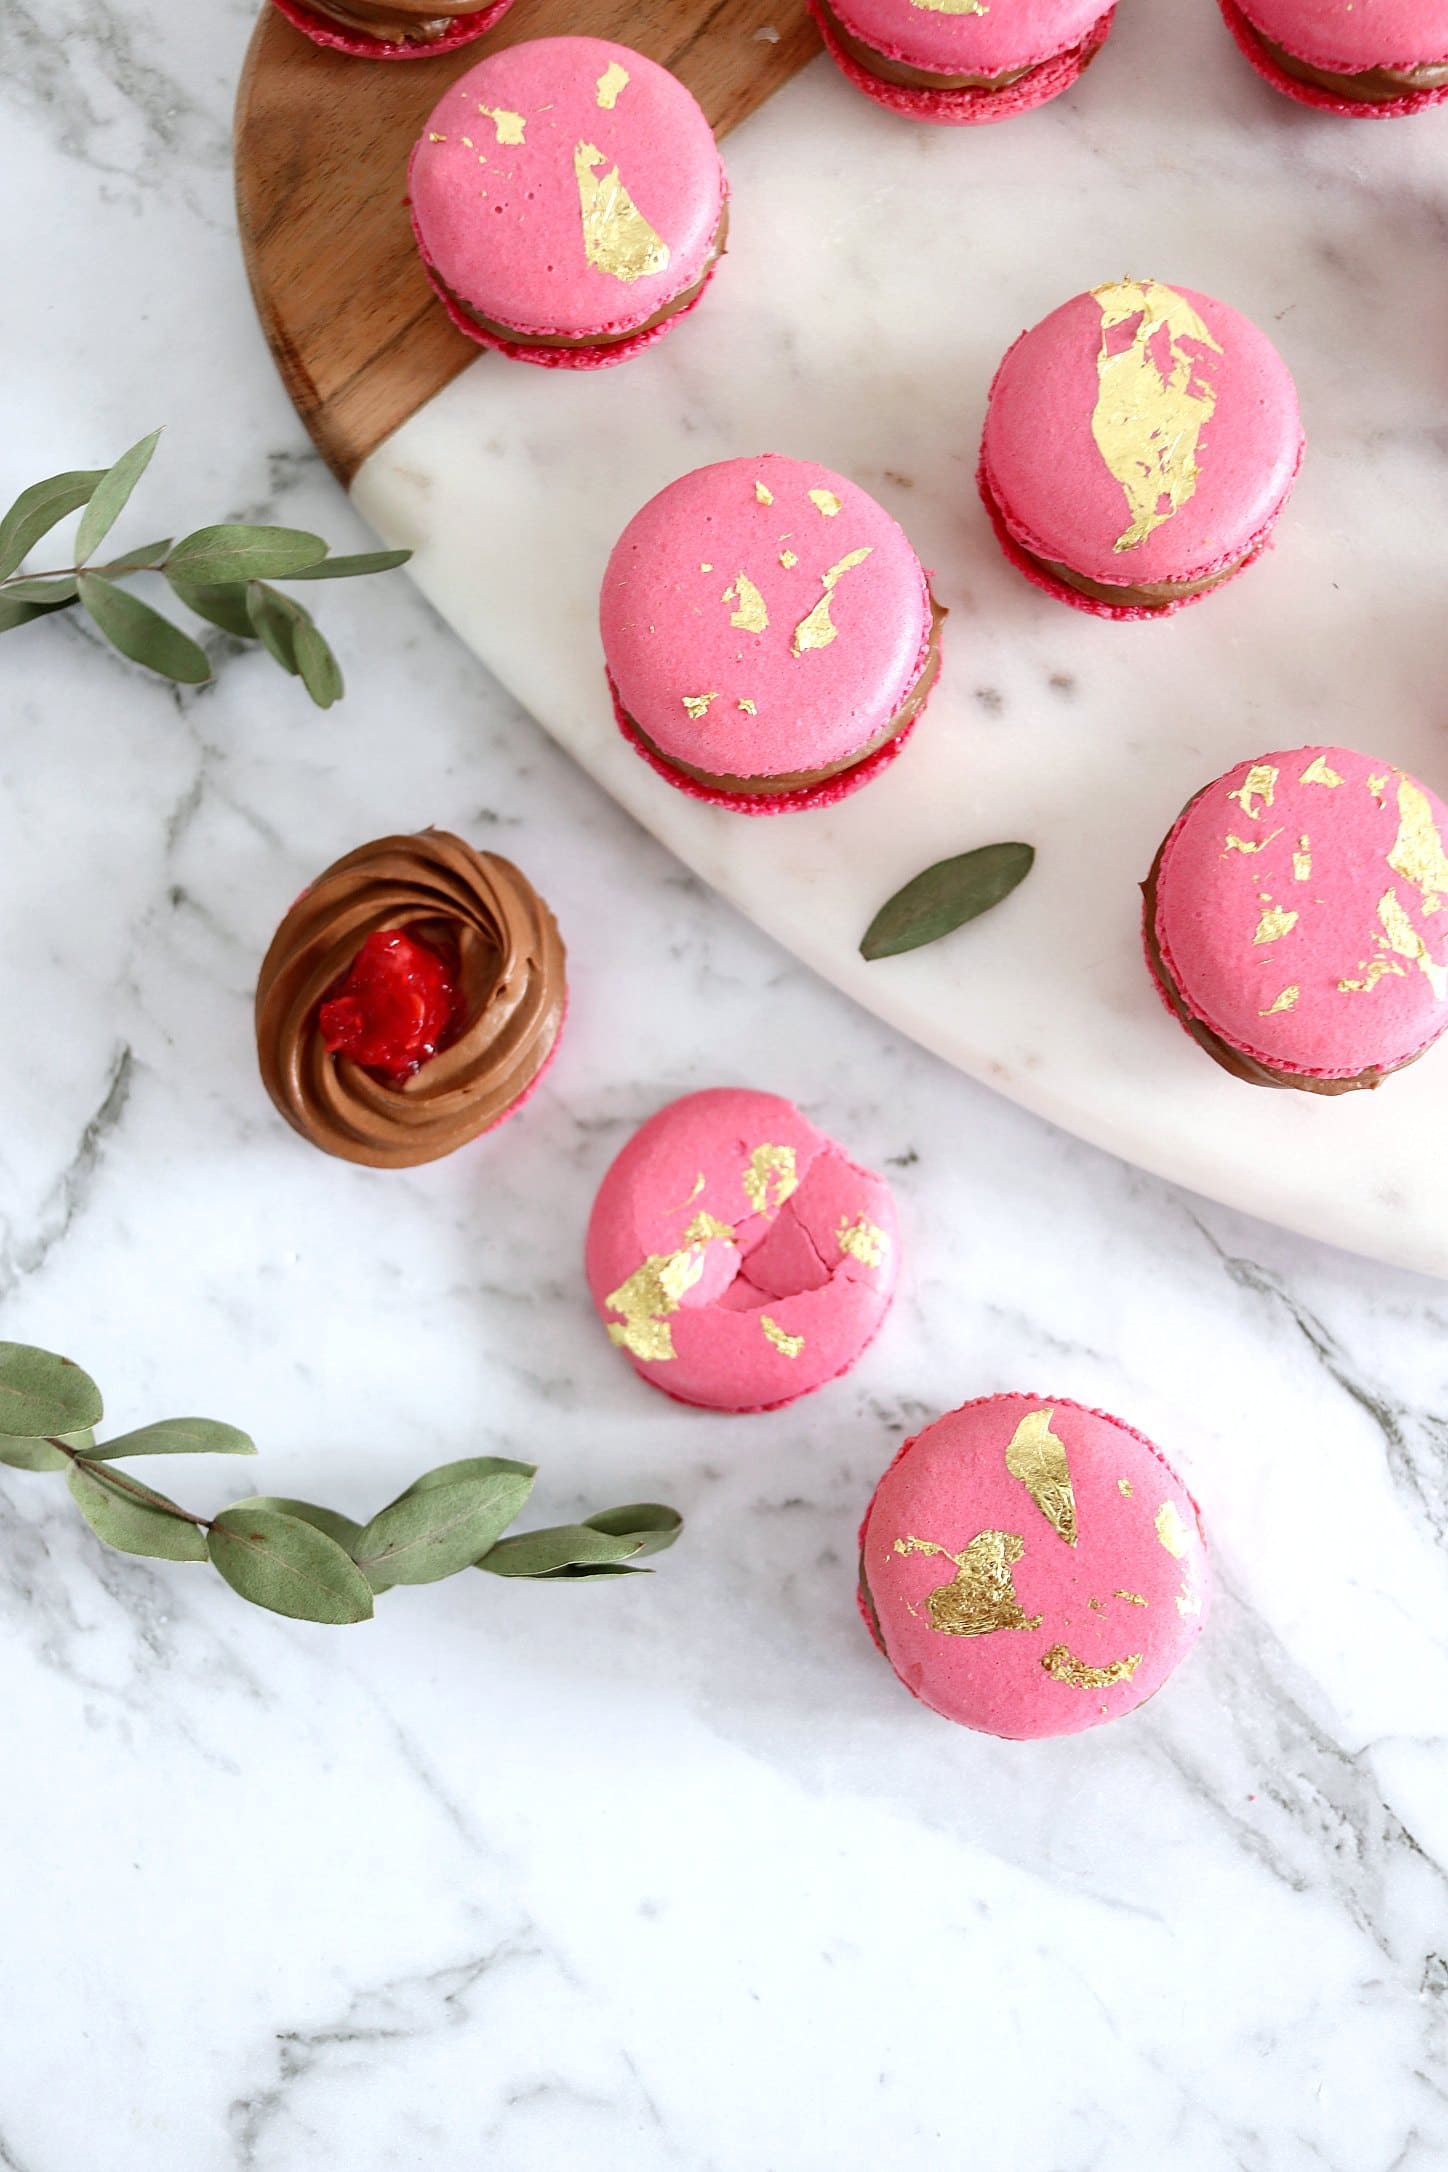 Earl Grey Tea and Raspberry Macarons